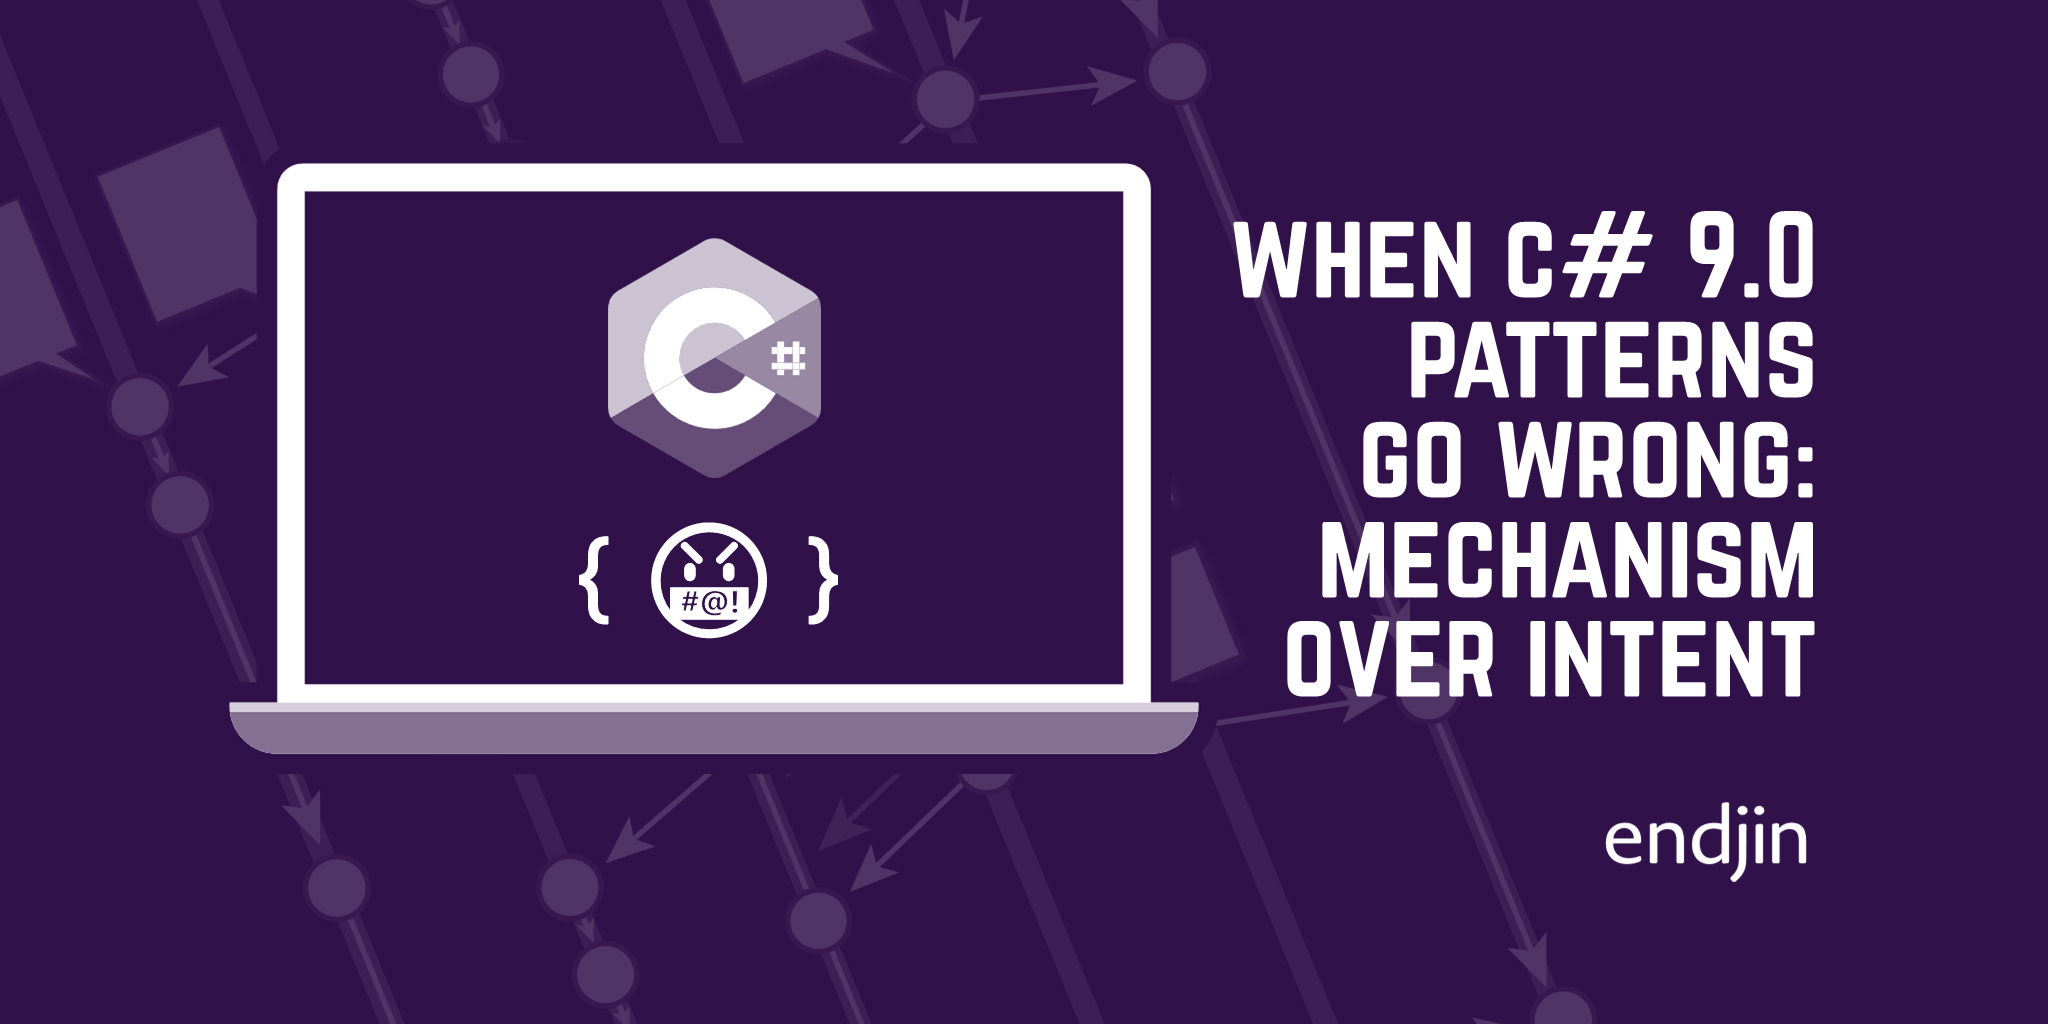 When C# 9.0 patterns go wrong: mechanism over intent